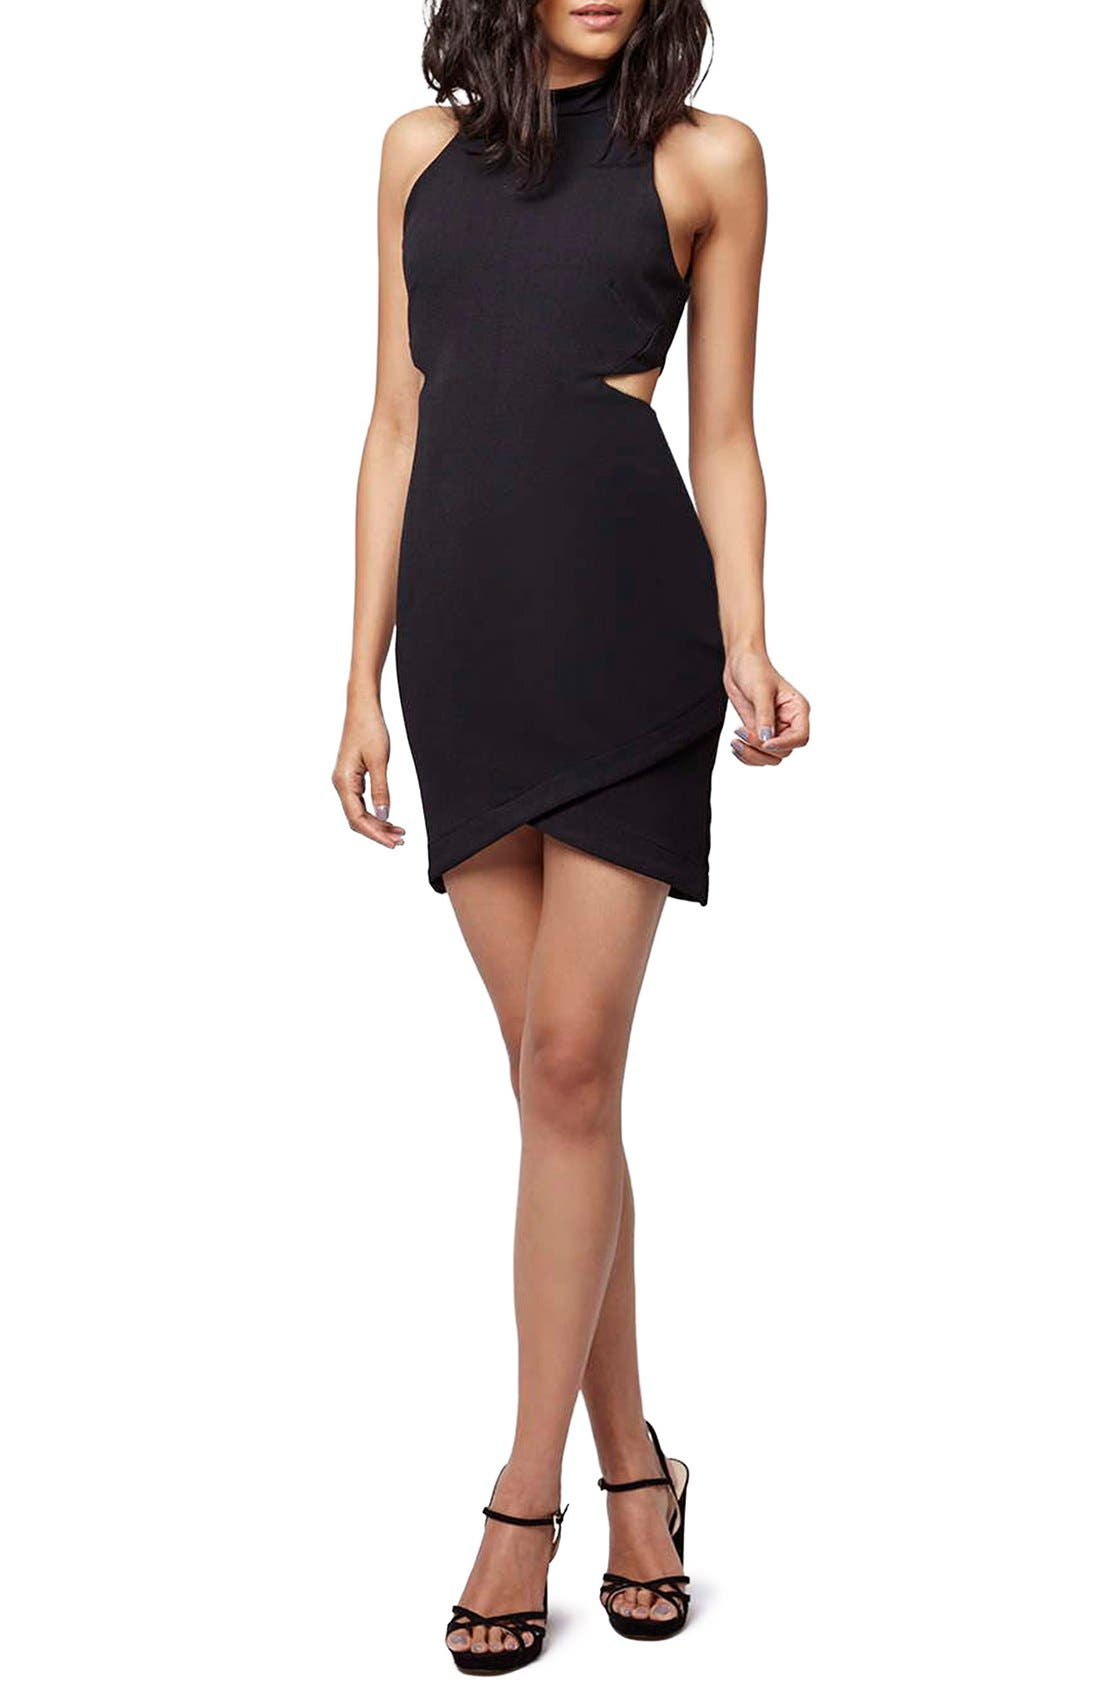 Alternate Image 1 Selected - Topshop Cutout Body-Con Dress (Petite)